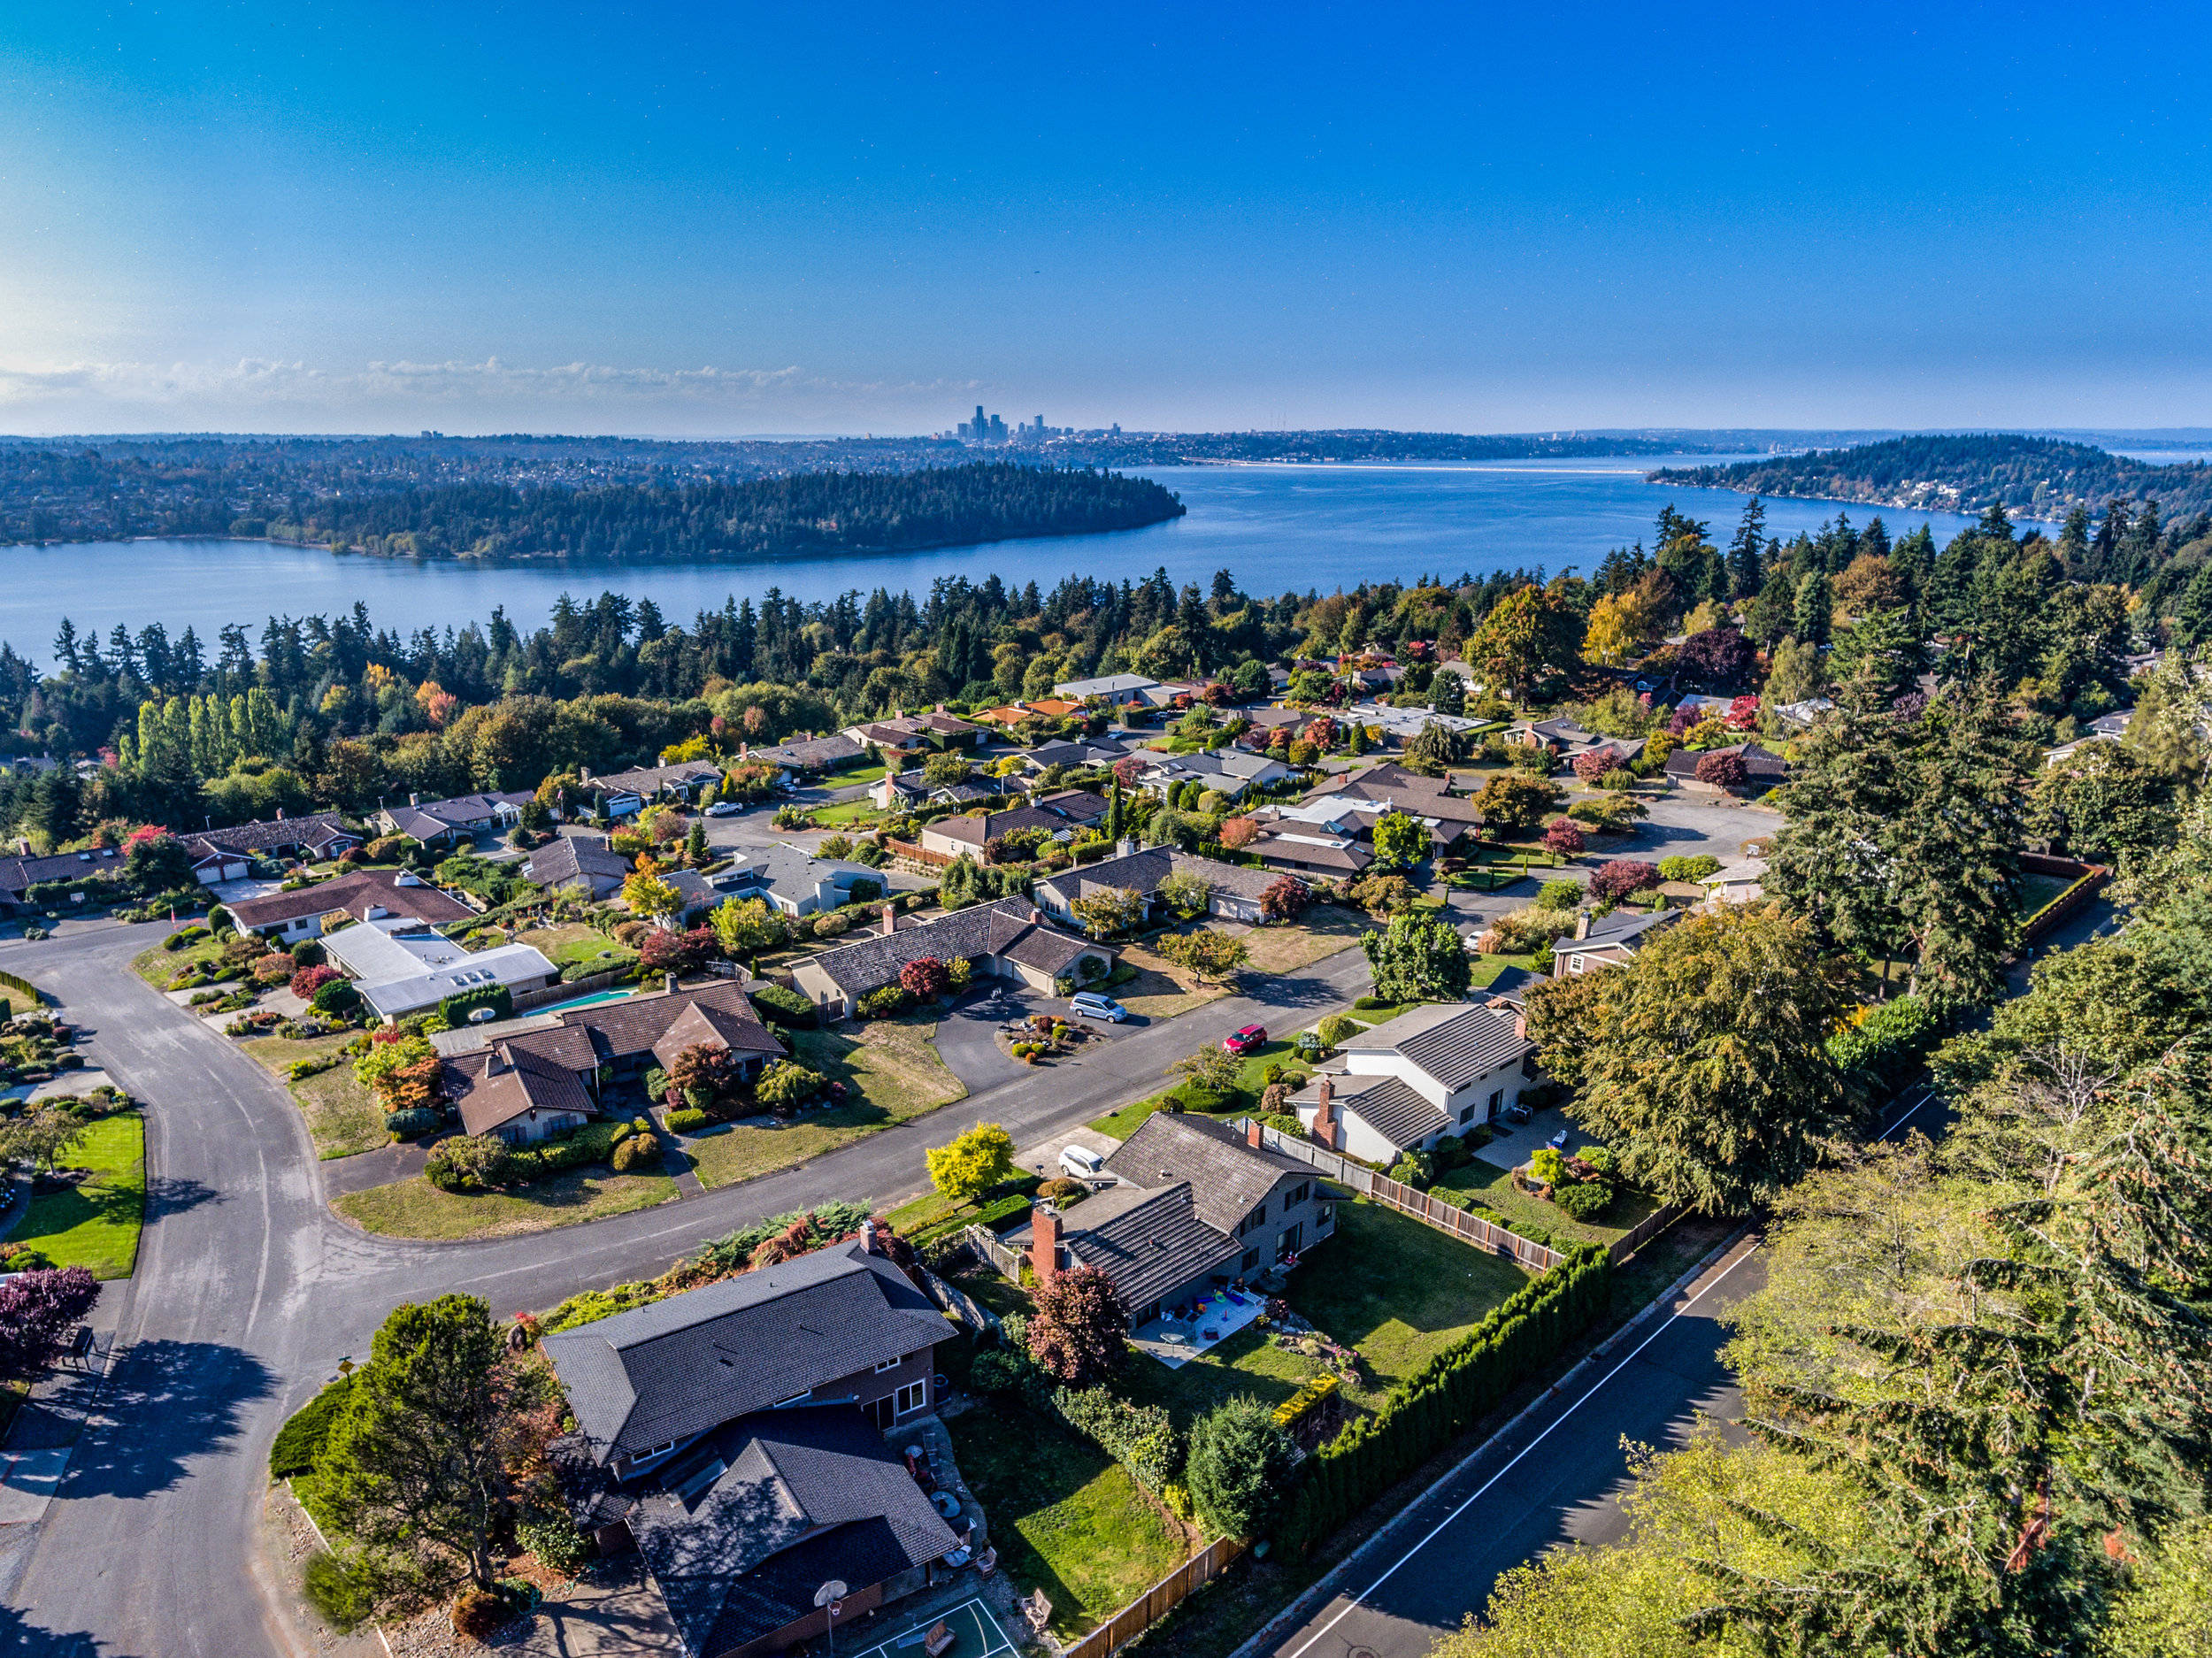 Wide angle drone images can help inform prospective buyers of the the surrounding neighborhood and area.